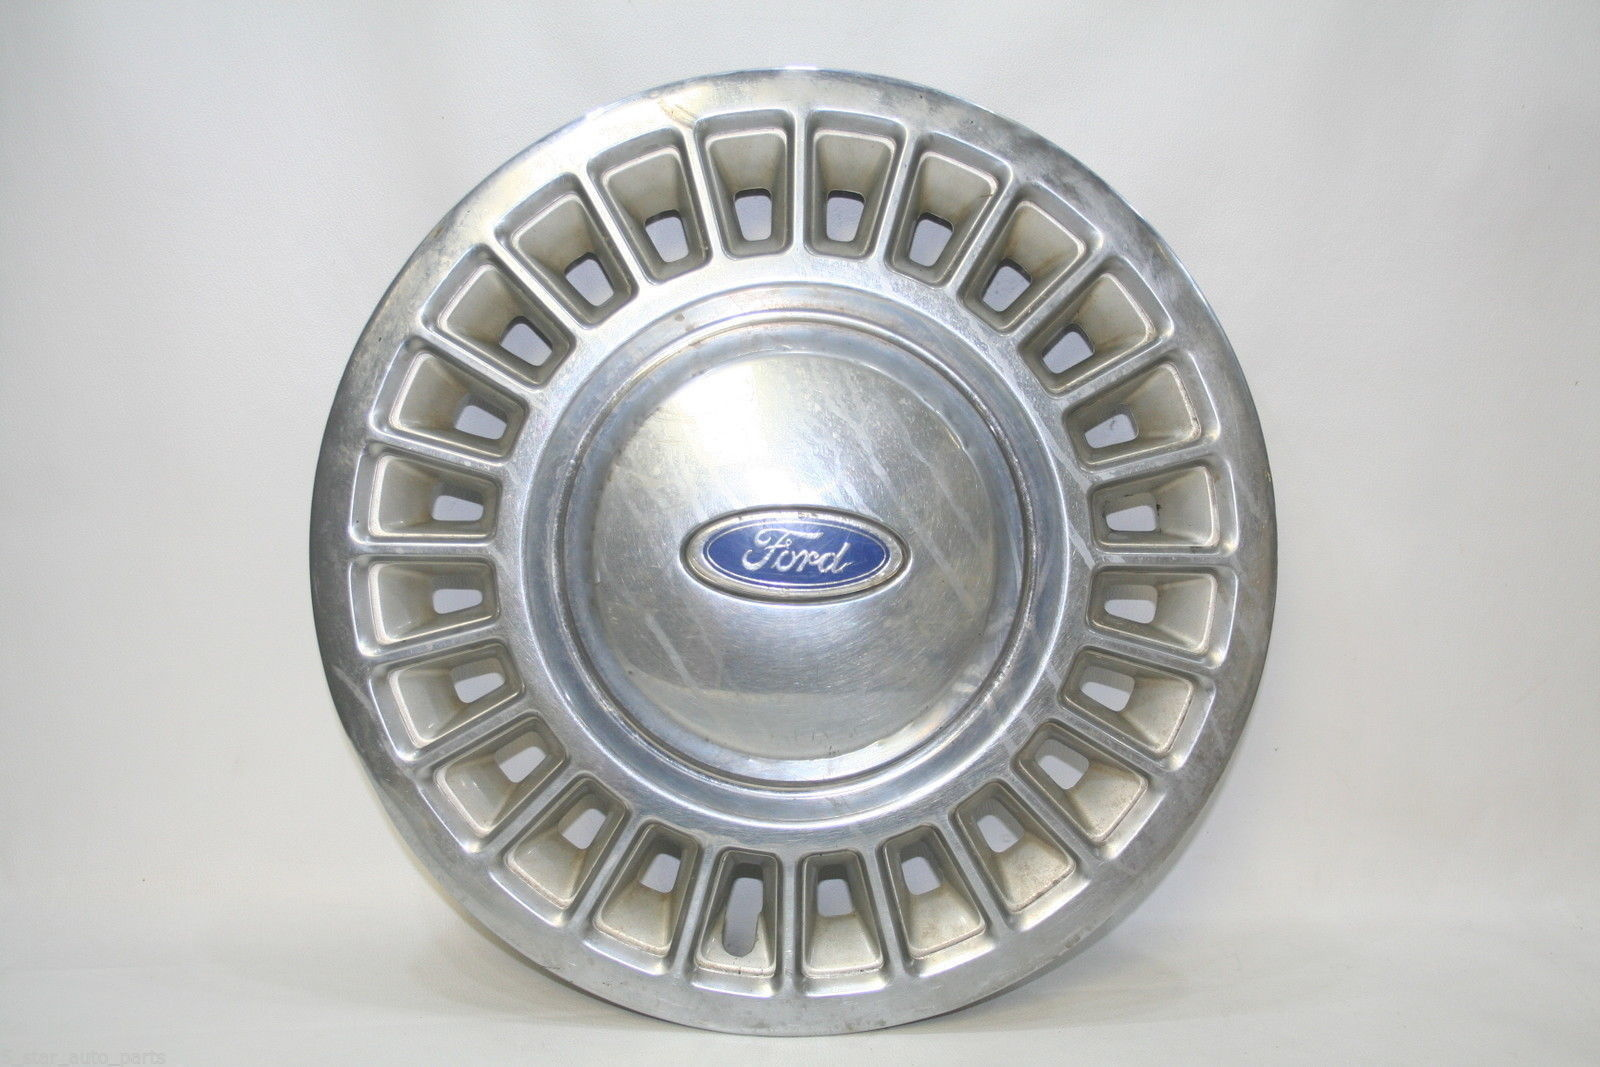 1995 to 1997 Ford Crown Victoria alloy wheel center cap hubcap